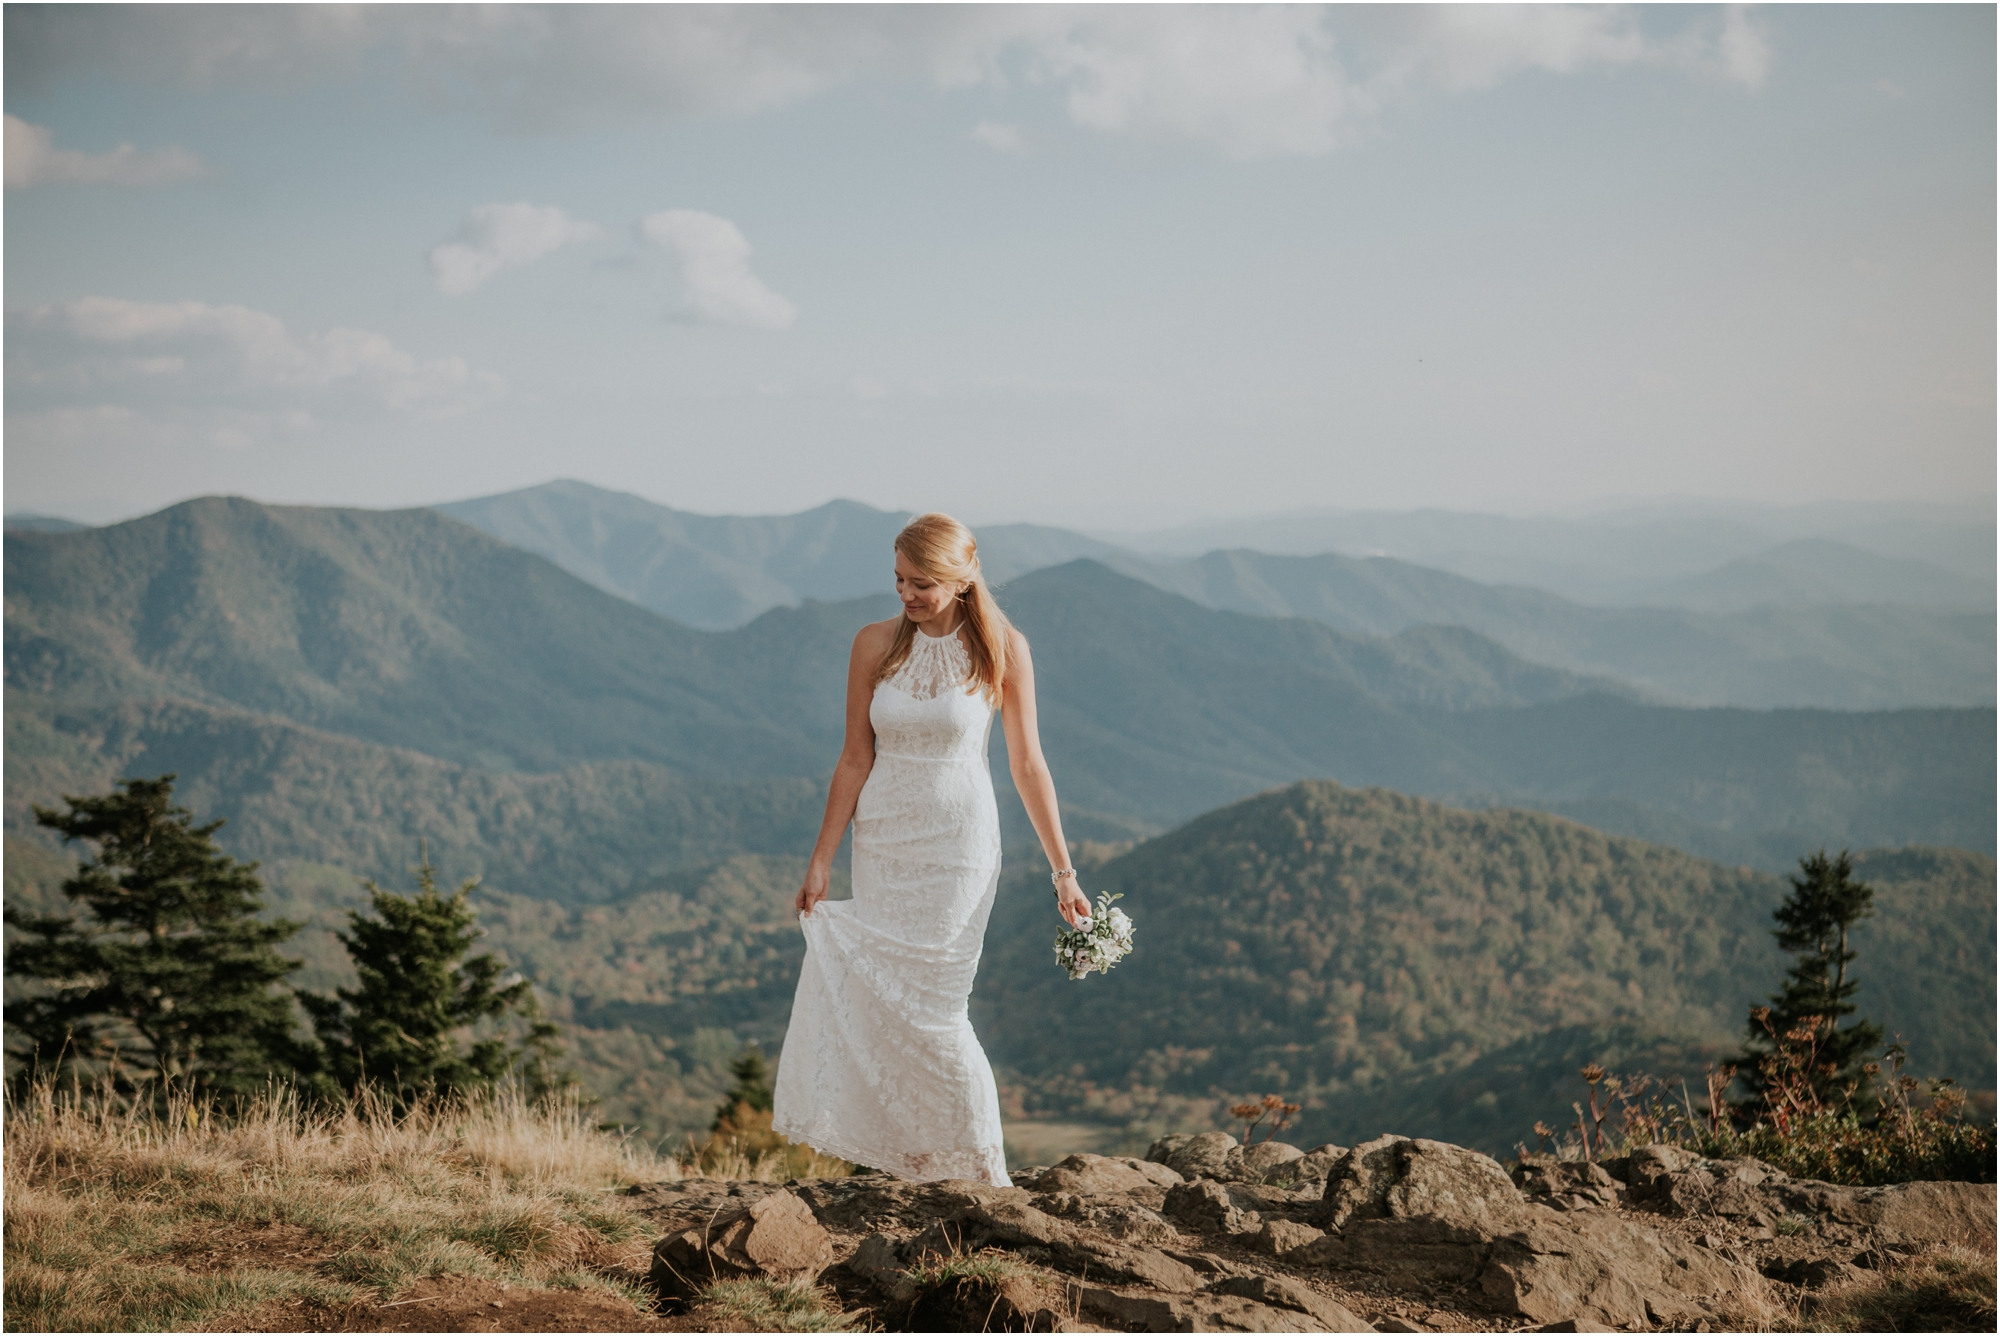 roan-mountain-tn-katy-sergent-photography-tennessee-elopement-intimate-wedding-adventurous-photographer-hiking-outdoors-summer-northeast-northcarolina-blue-ridge_0066.jpg